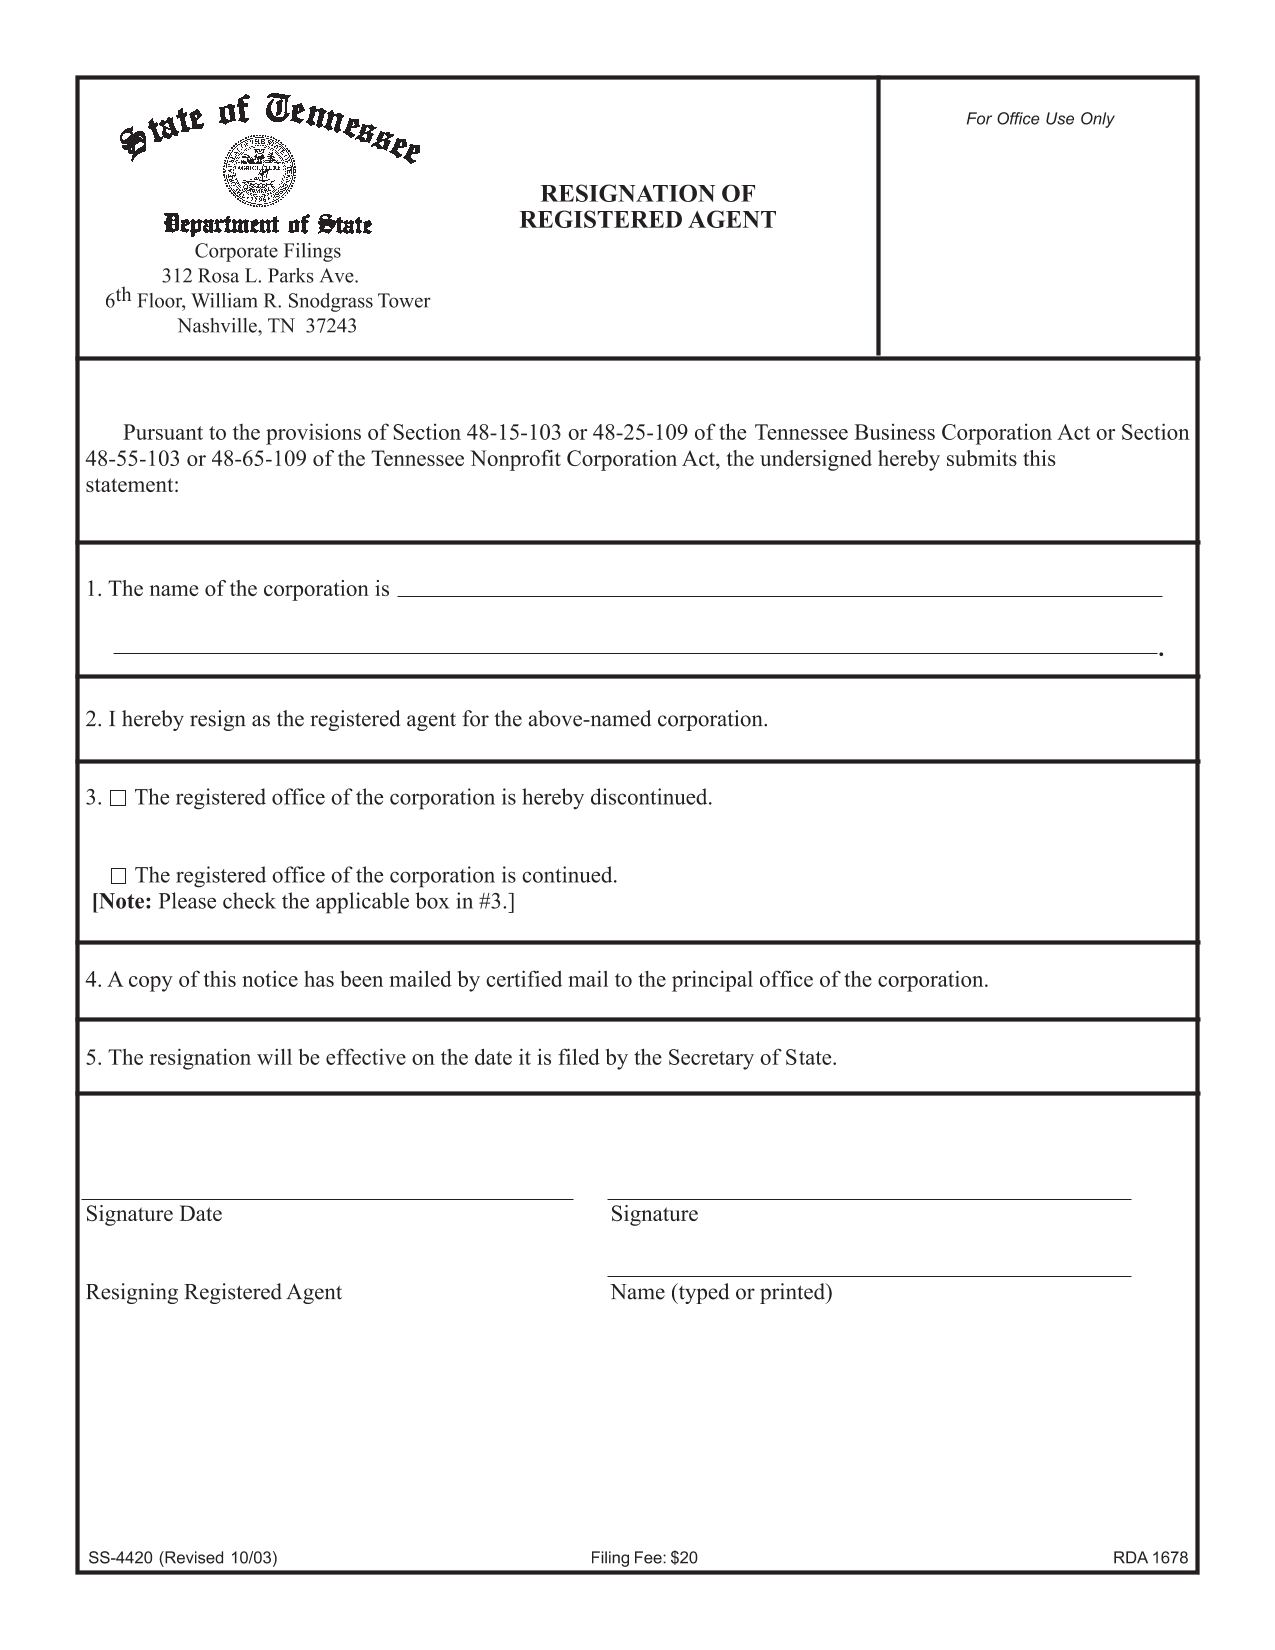 tennessee-resignation-of-registered-agent